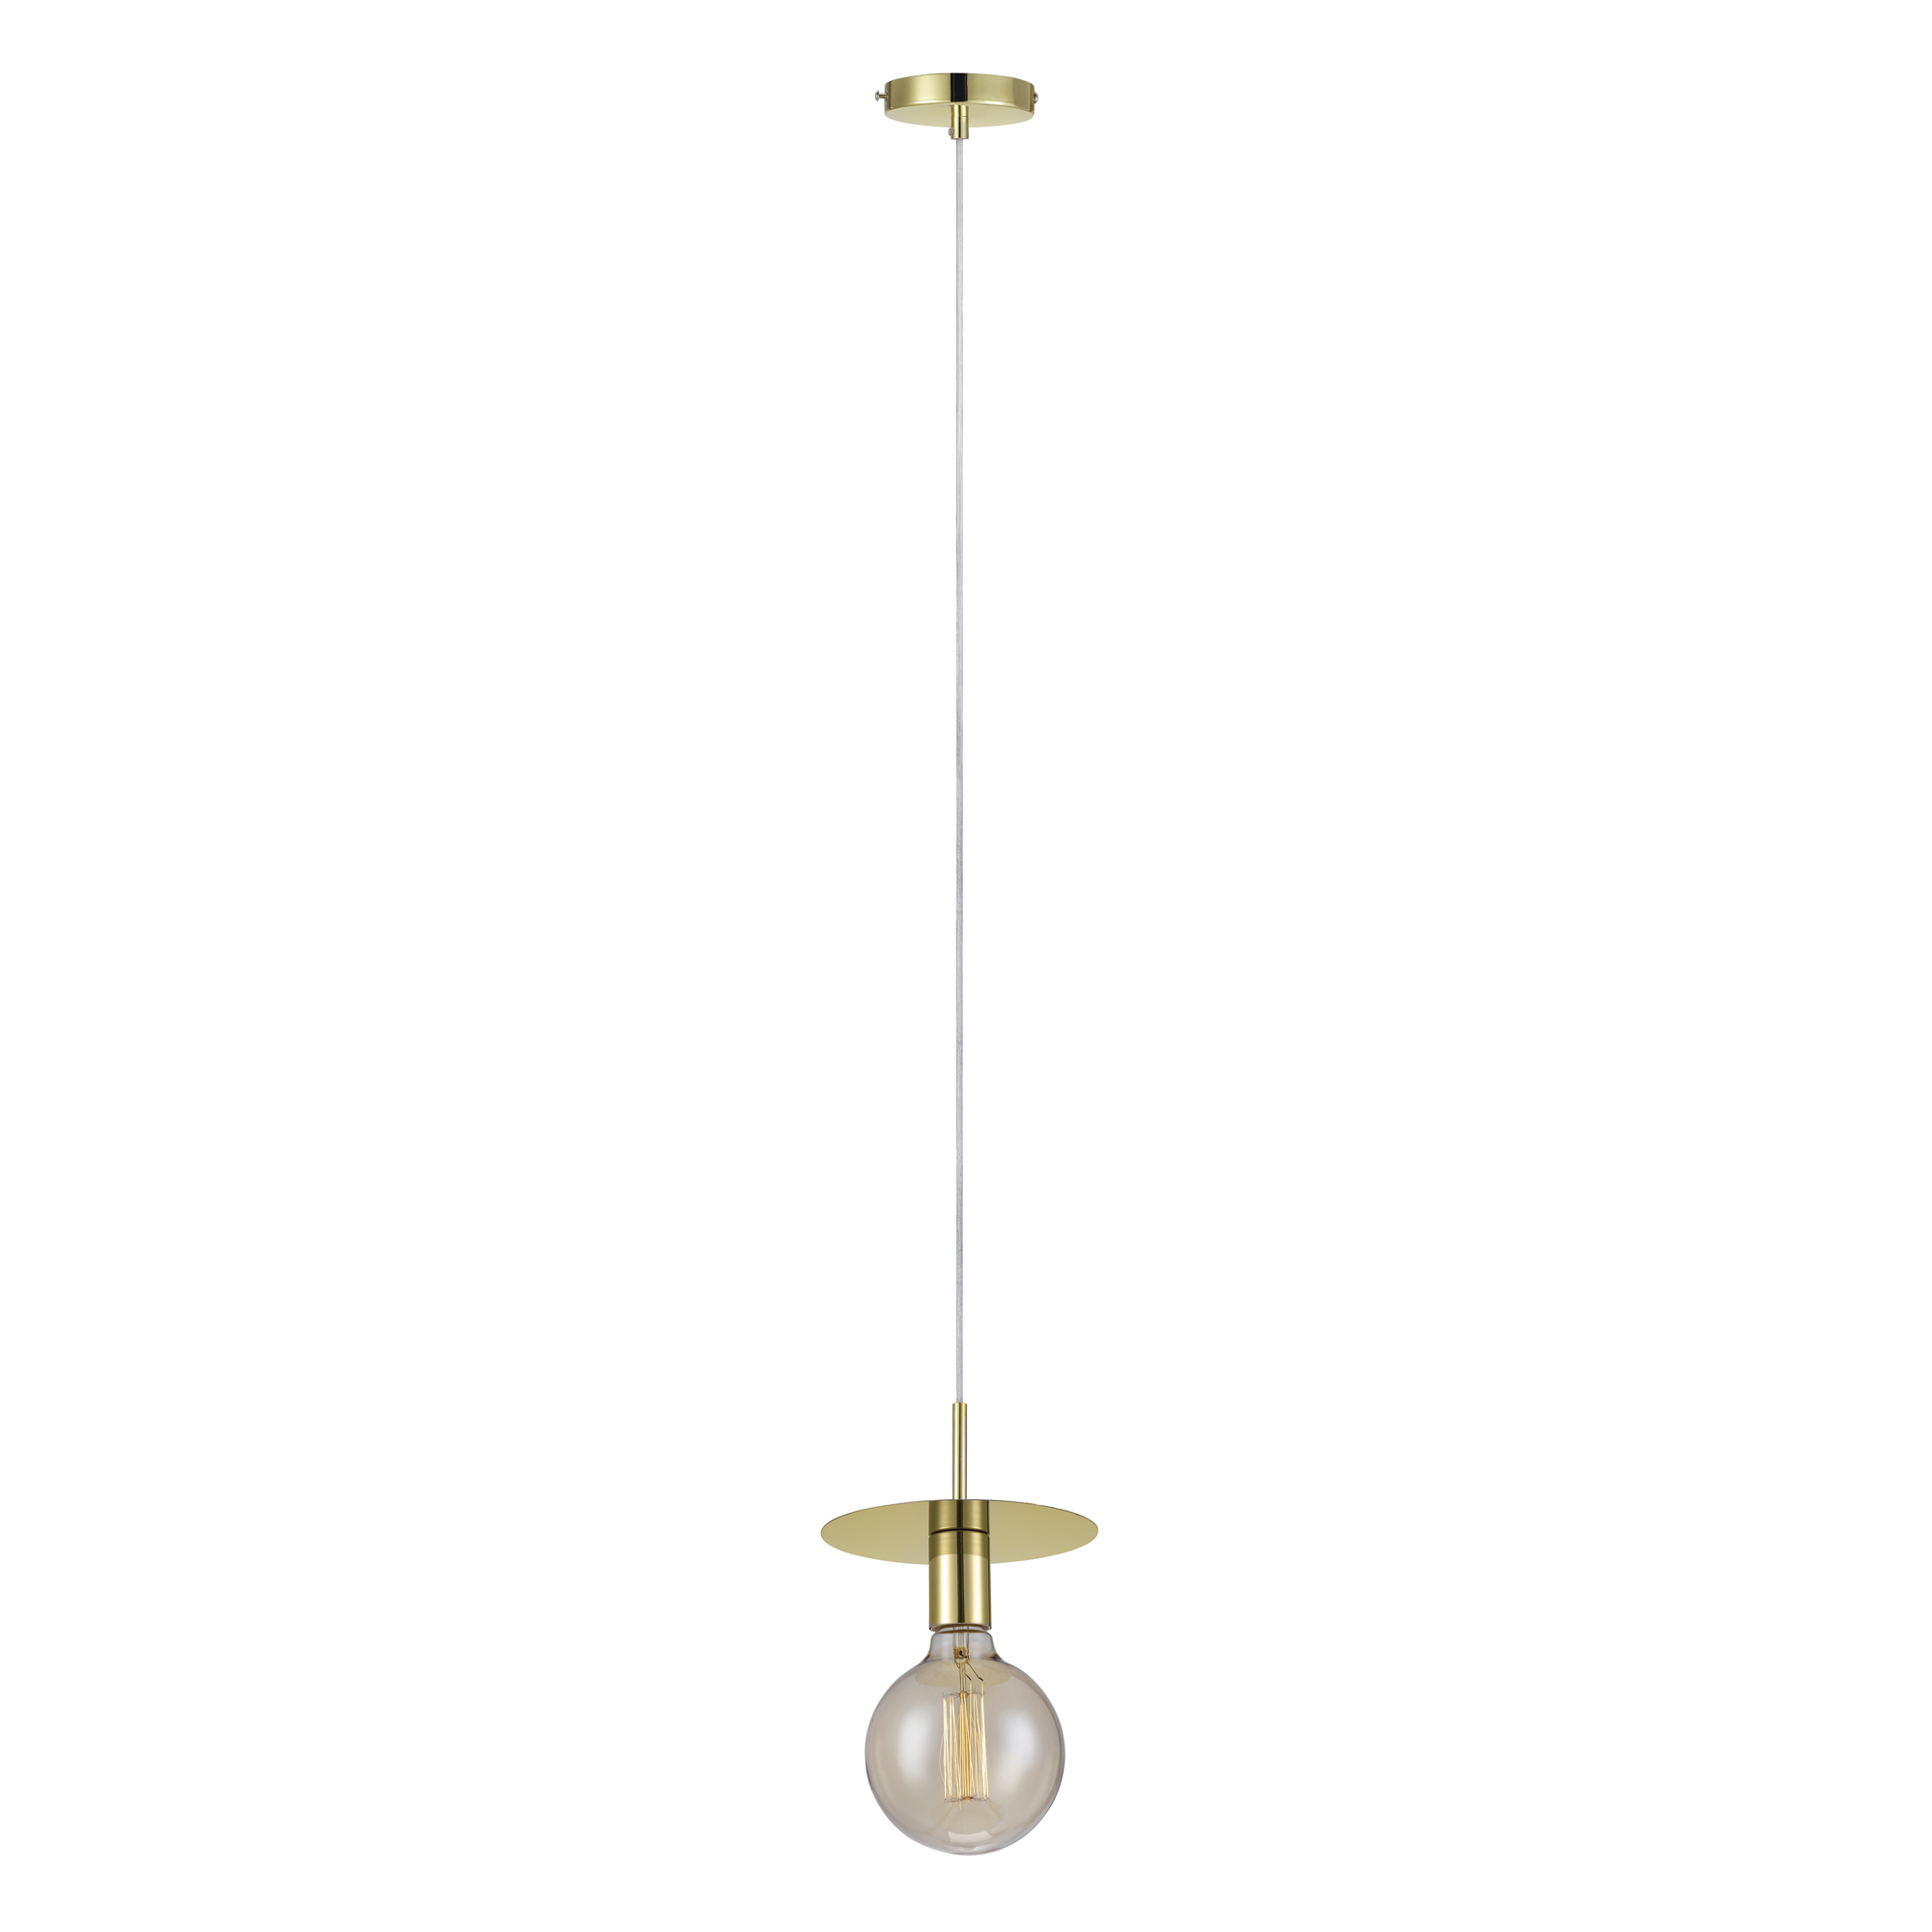 Disc 1-lichts Hanglamp messing